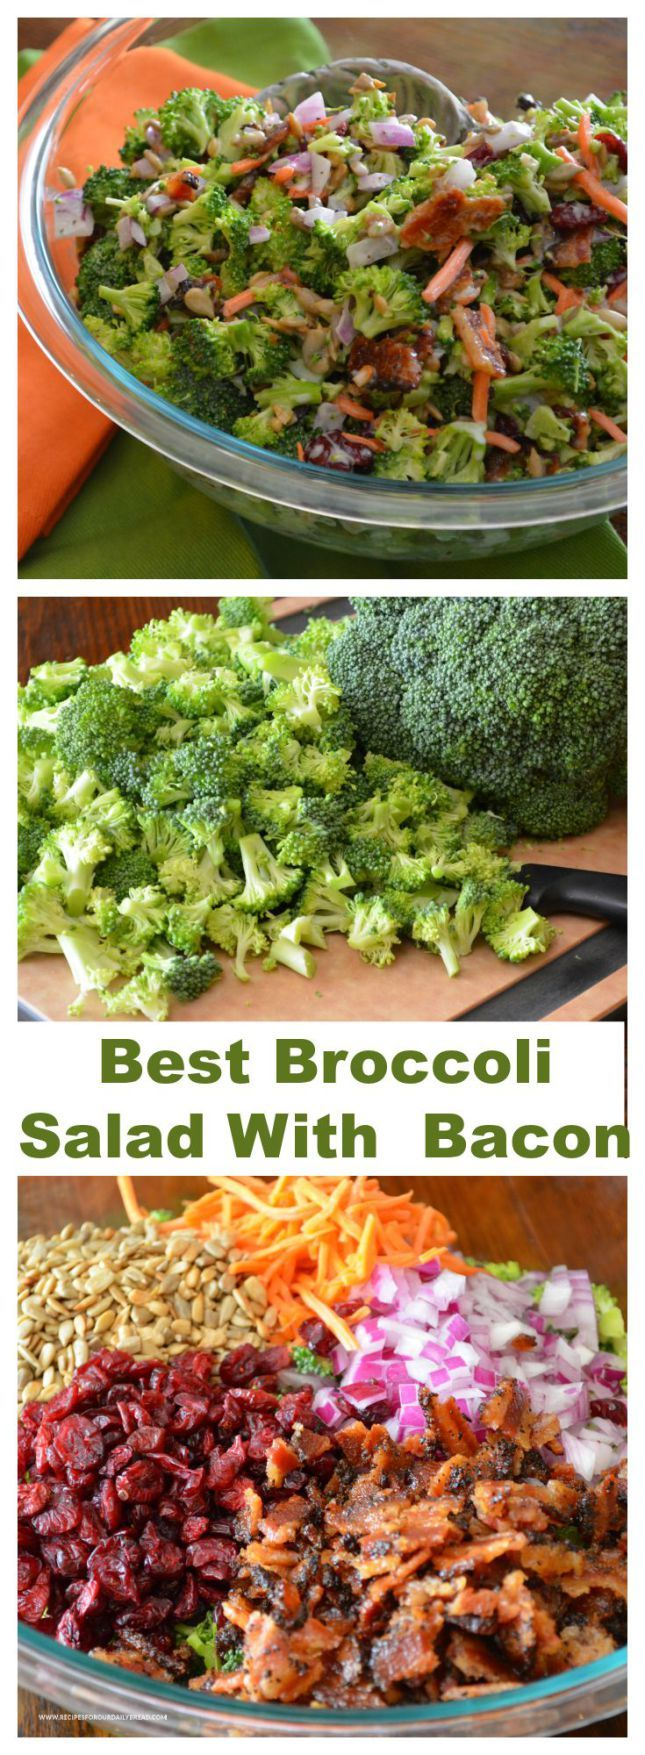 How to Make Awesome Colorful Broccoli Salad With Bacon? - I have tried many…